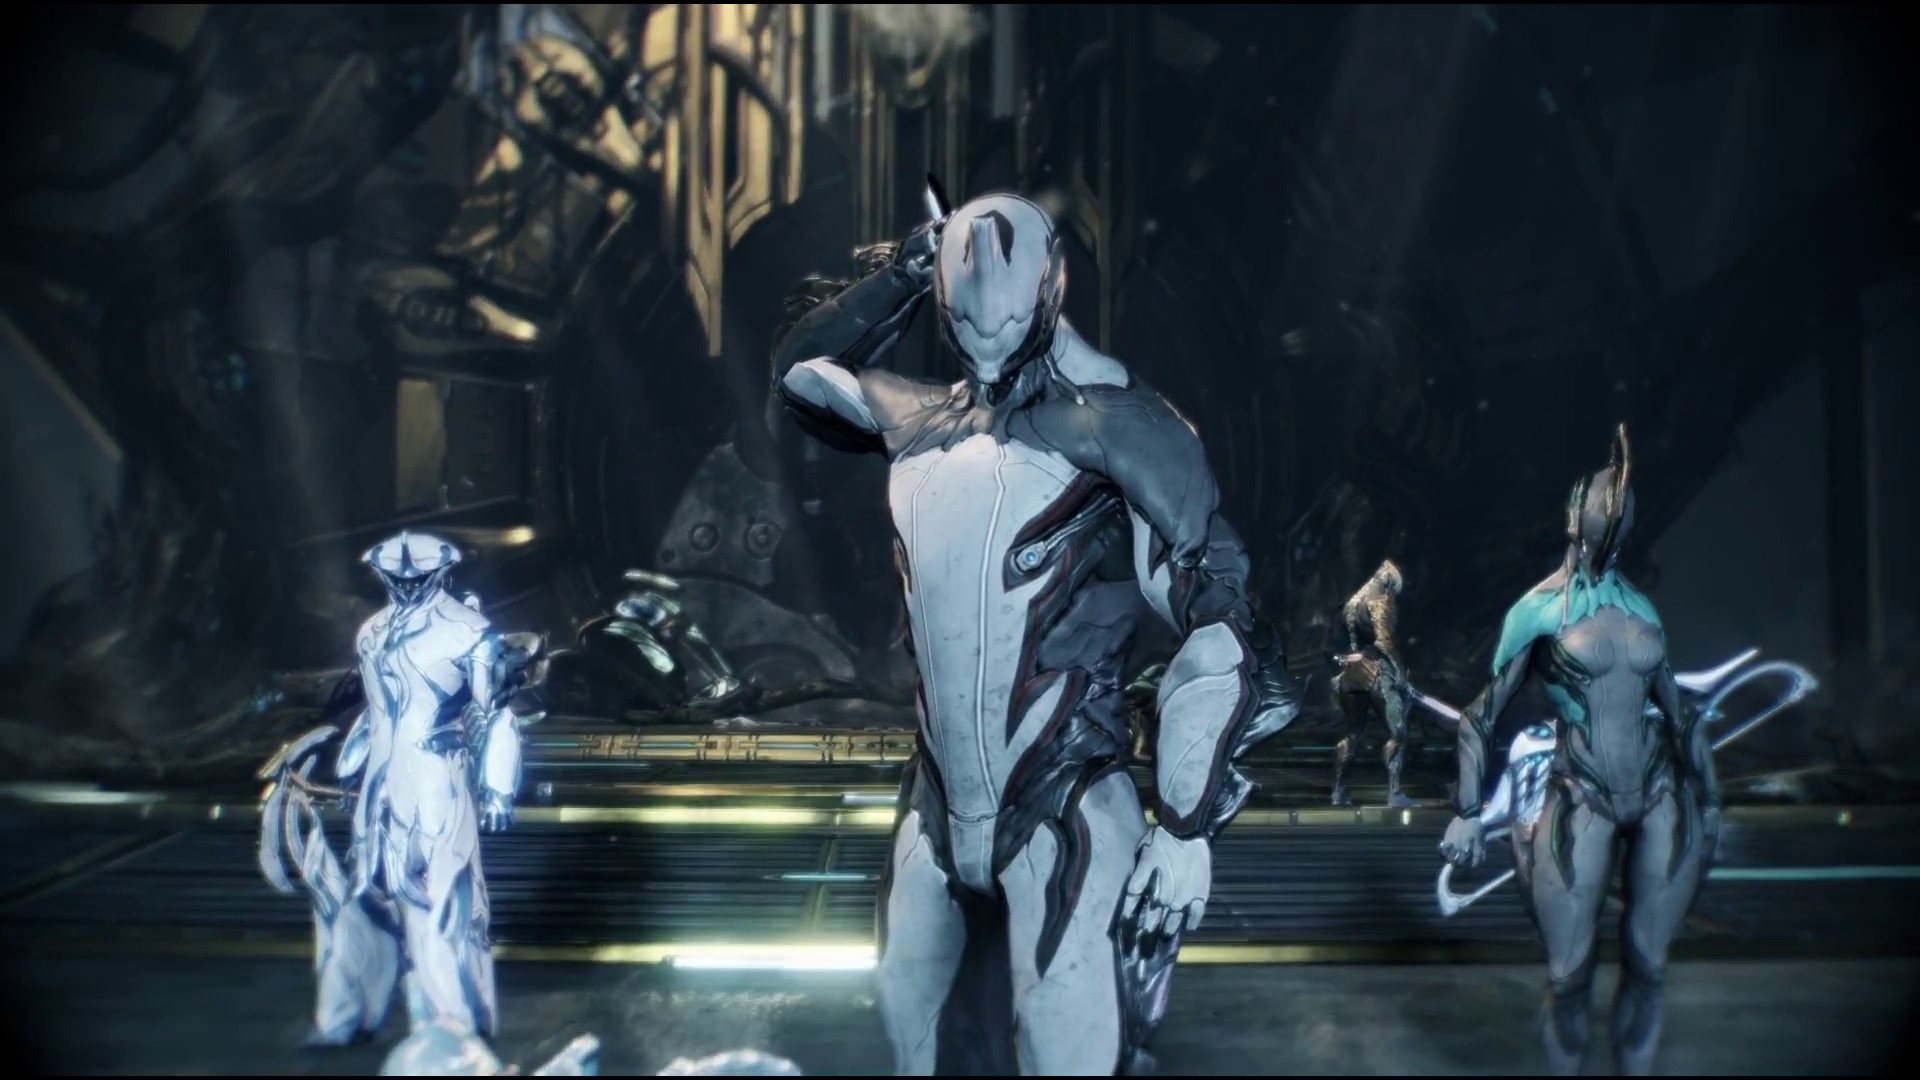 For the game itself, see WARFRAME.